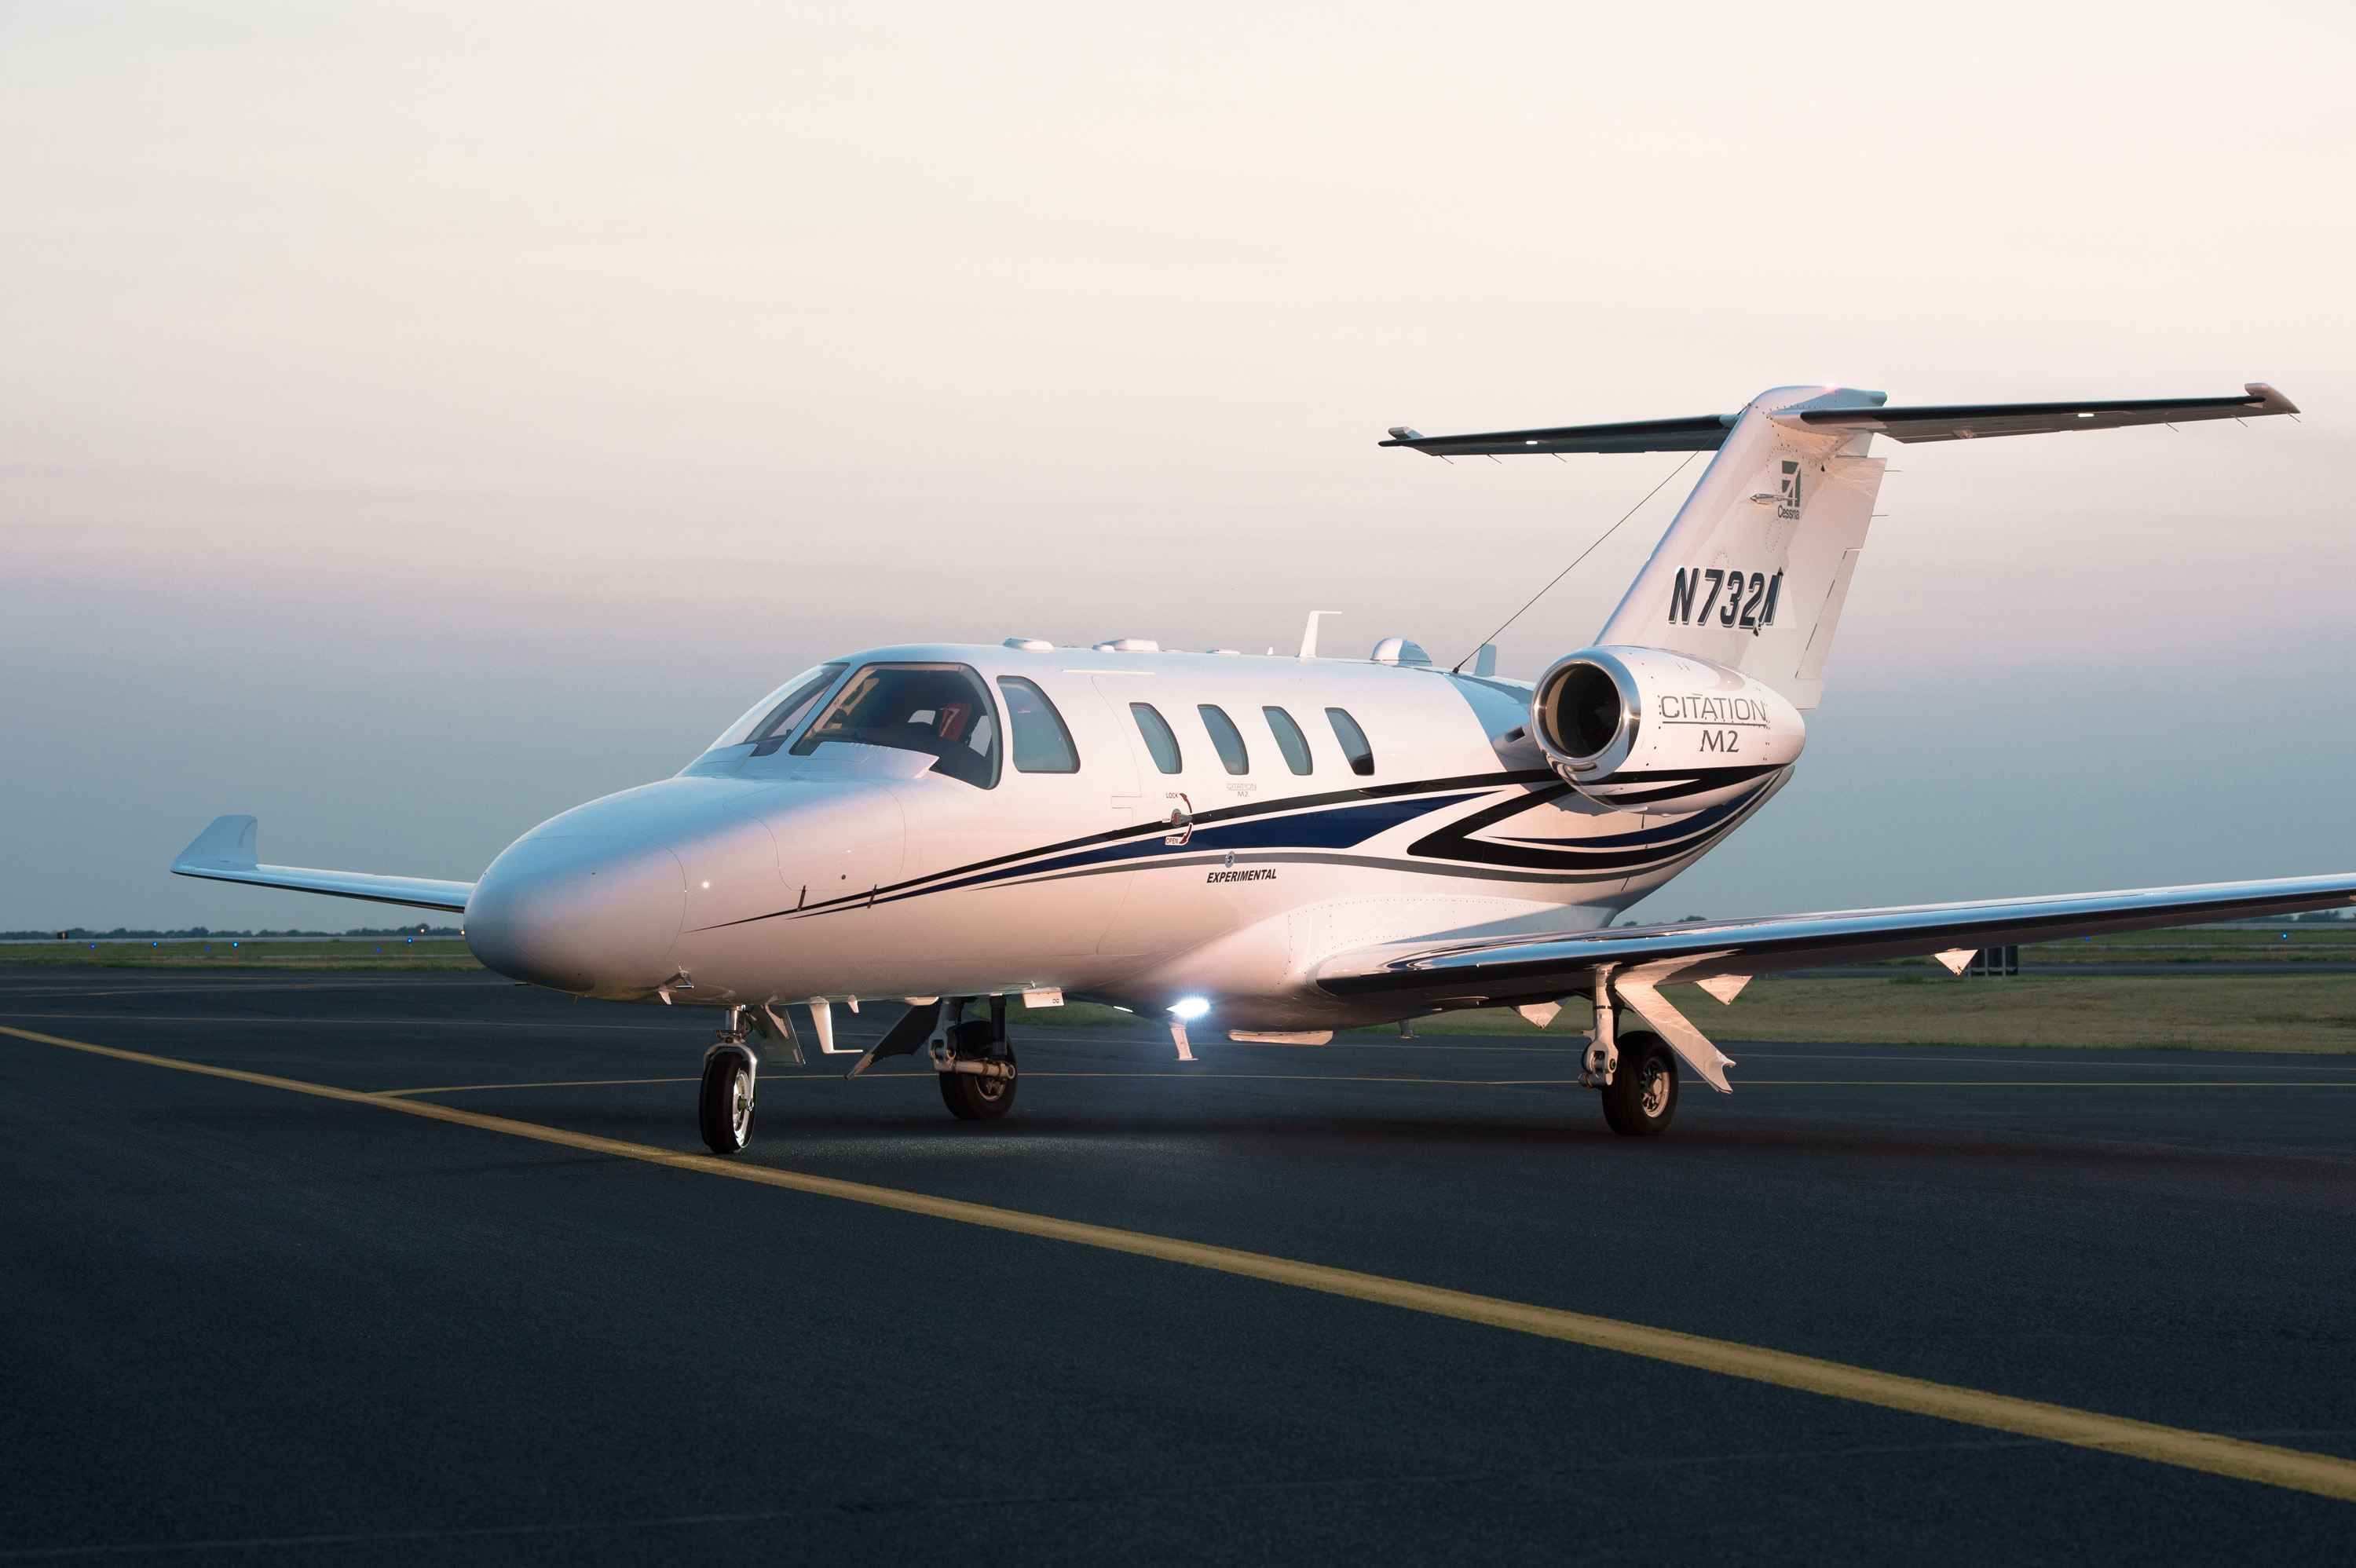 Cessna Citation M2 - Africair, Inc